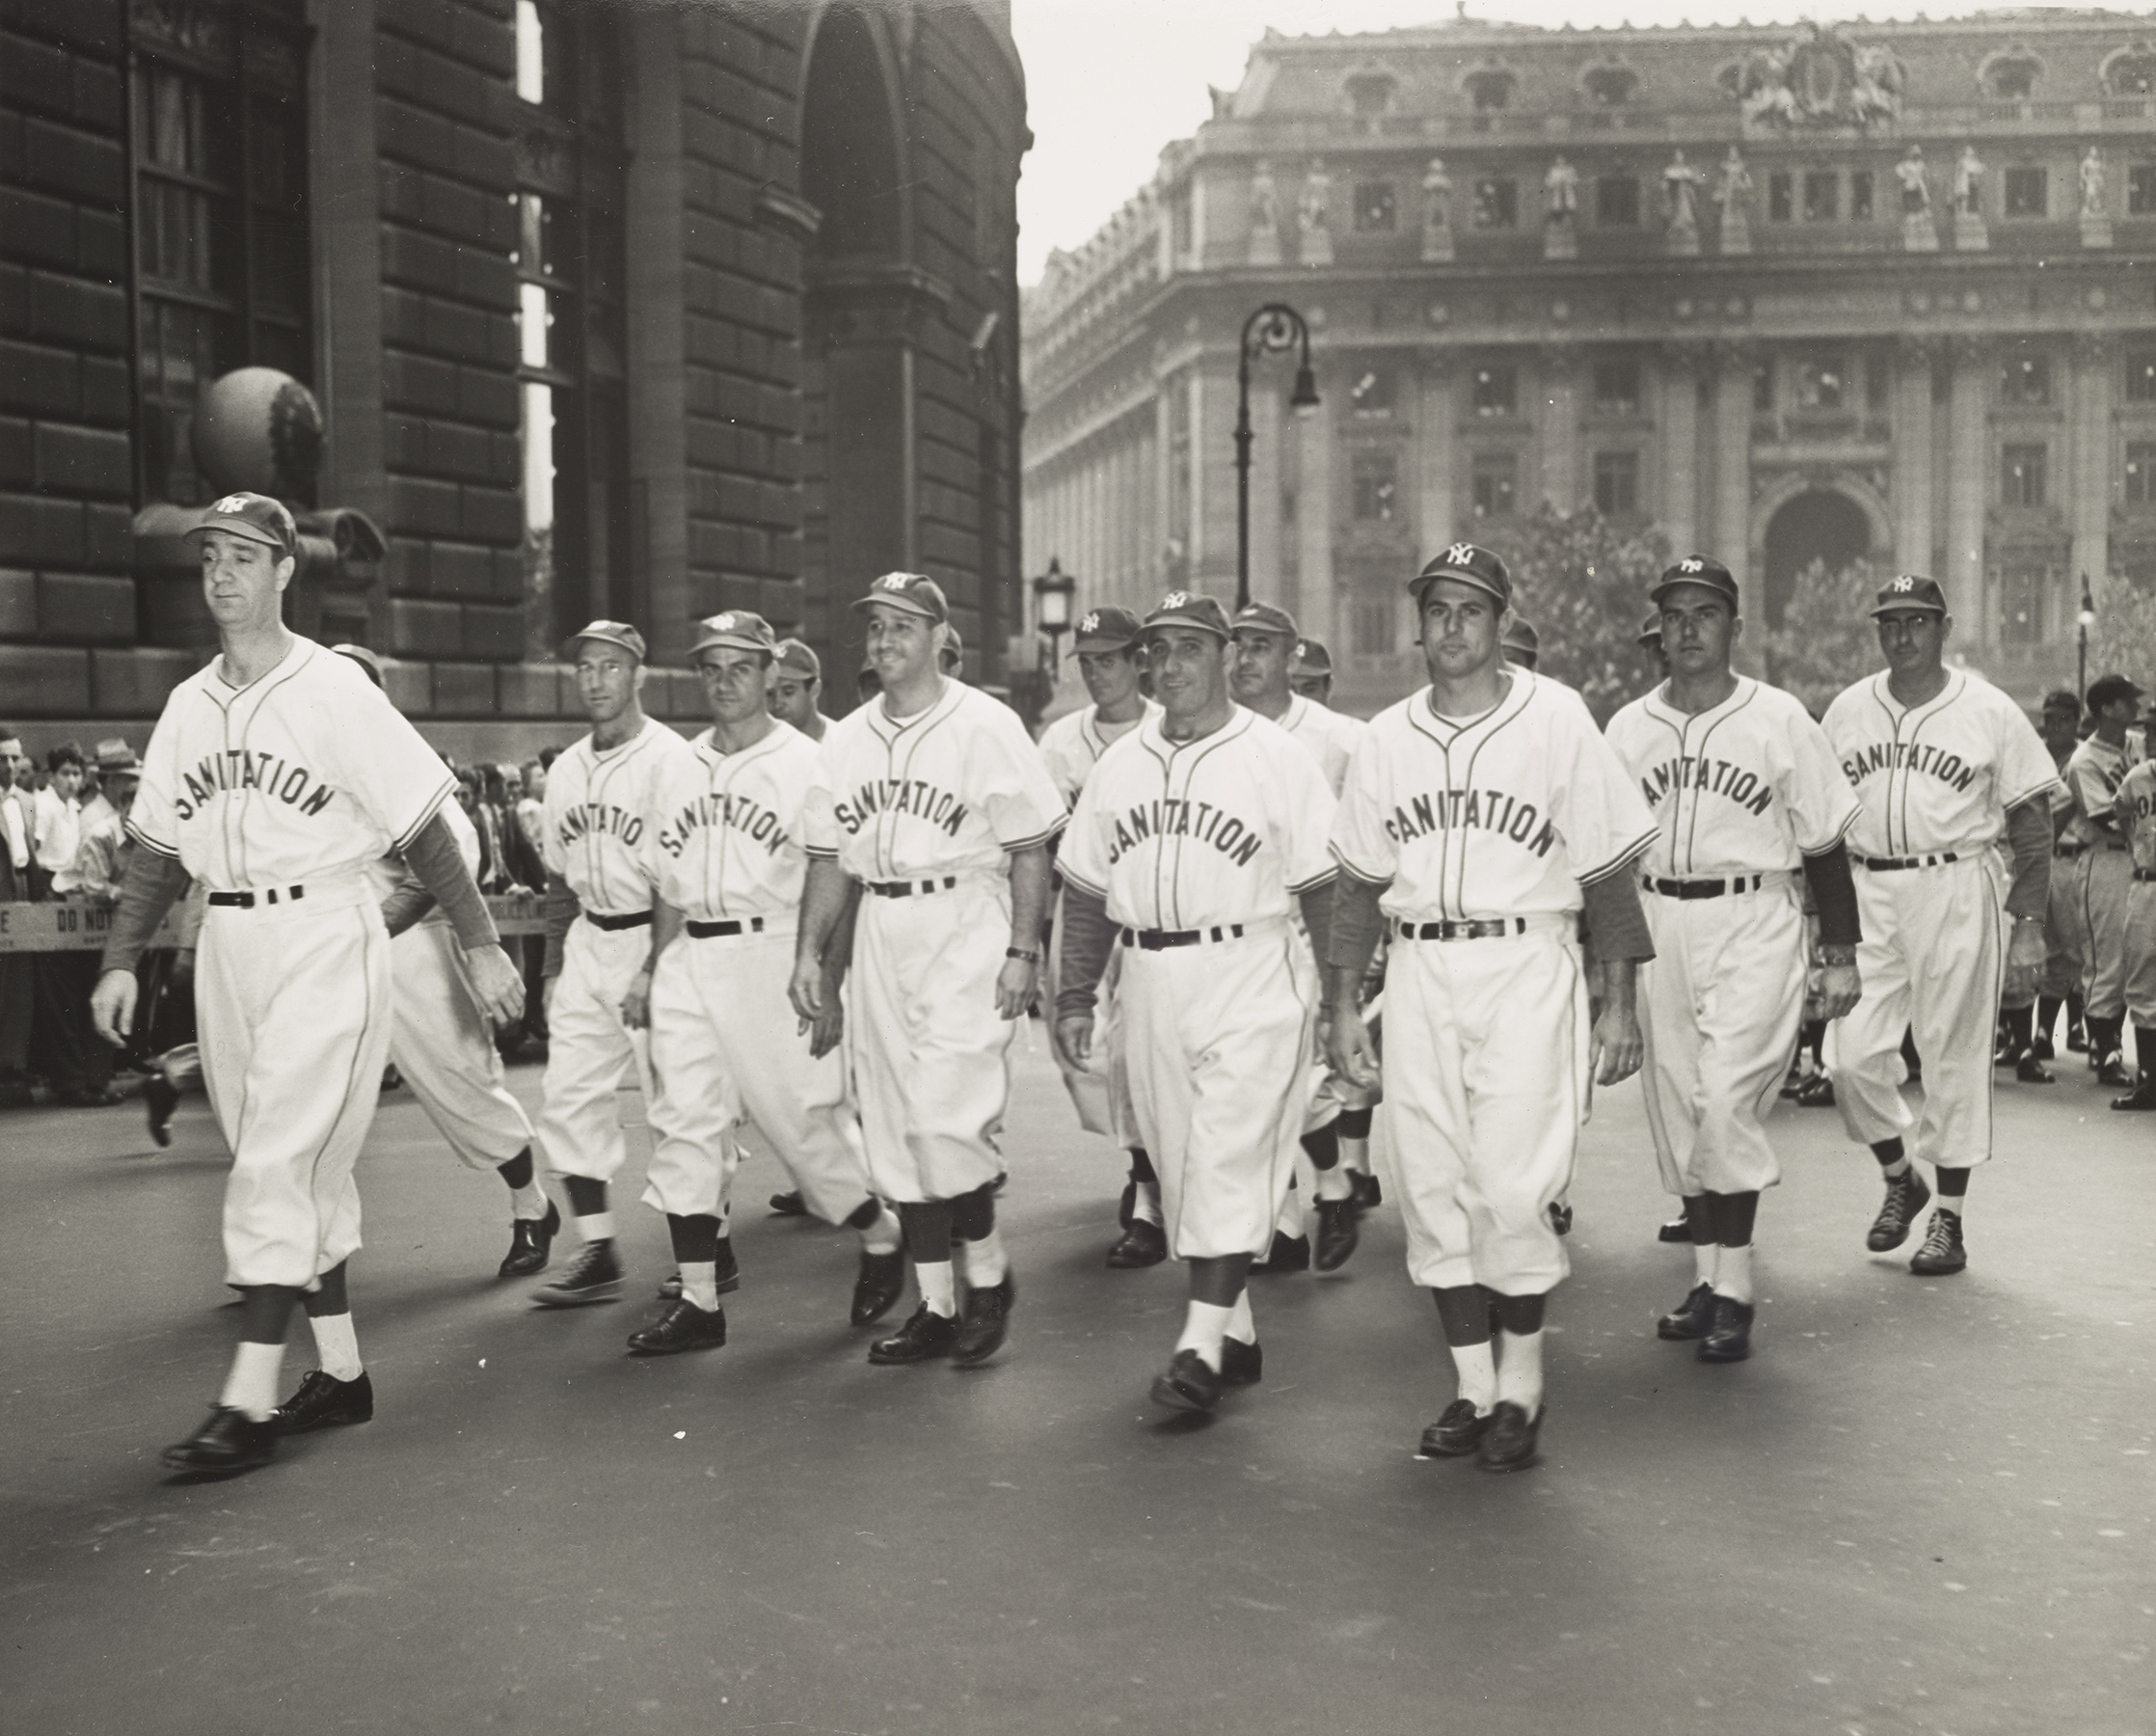 Sanitation Department Baseball Team marches on Lower Broadway on Connie Mack Day, August 19, 1949. NYC Municipal Archives Collections.